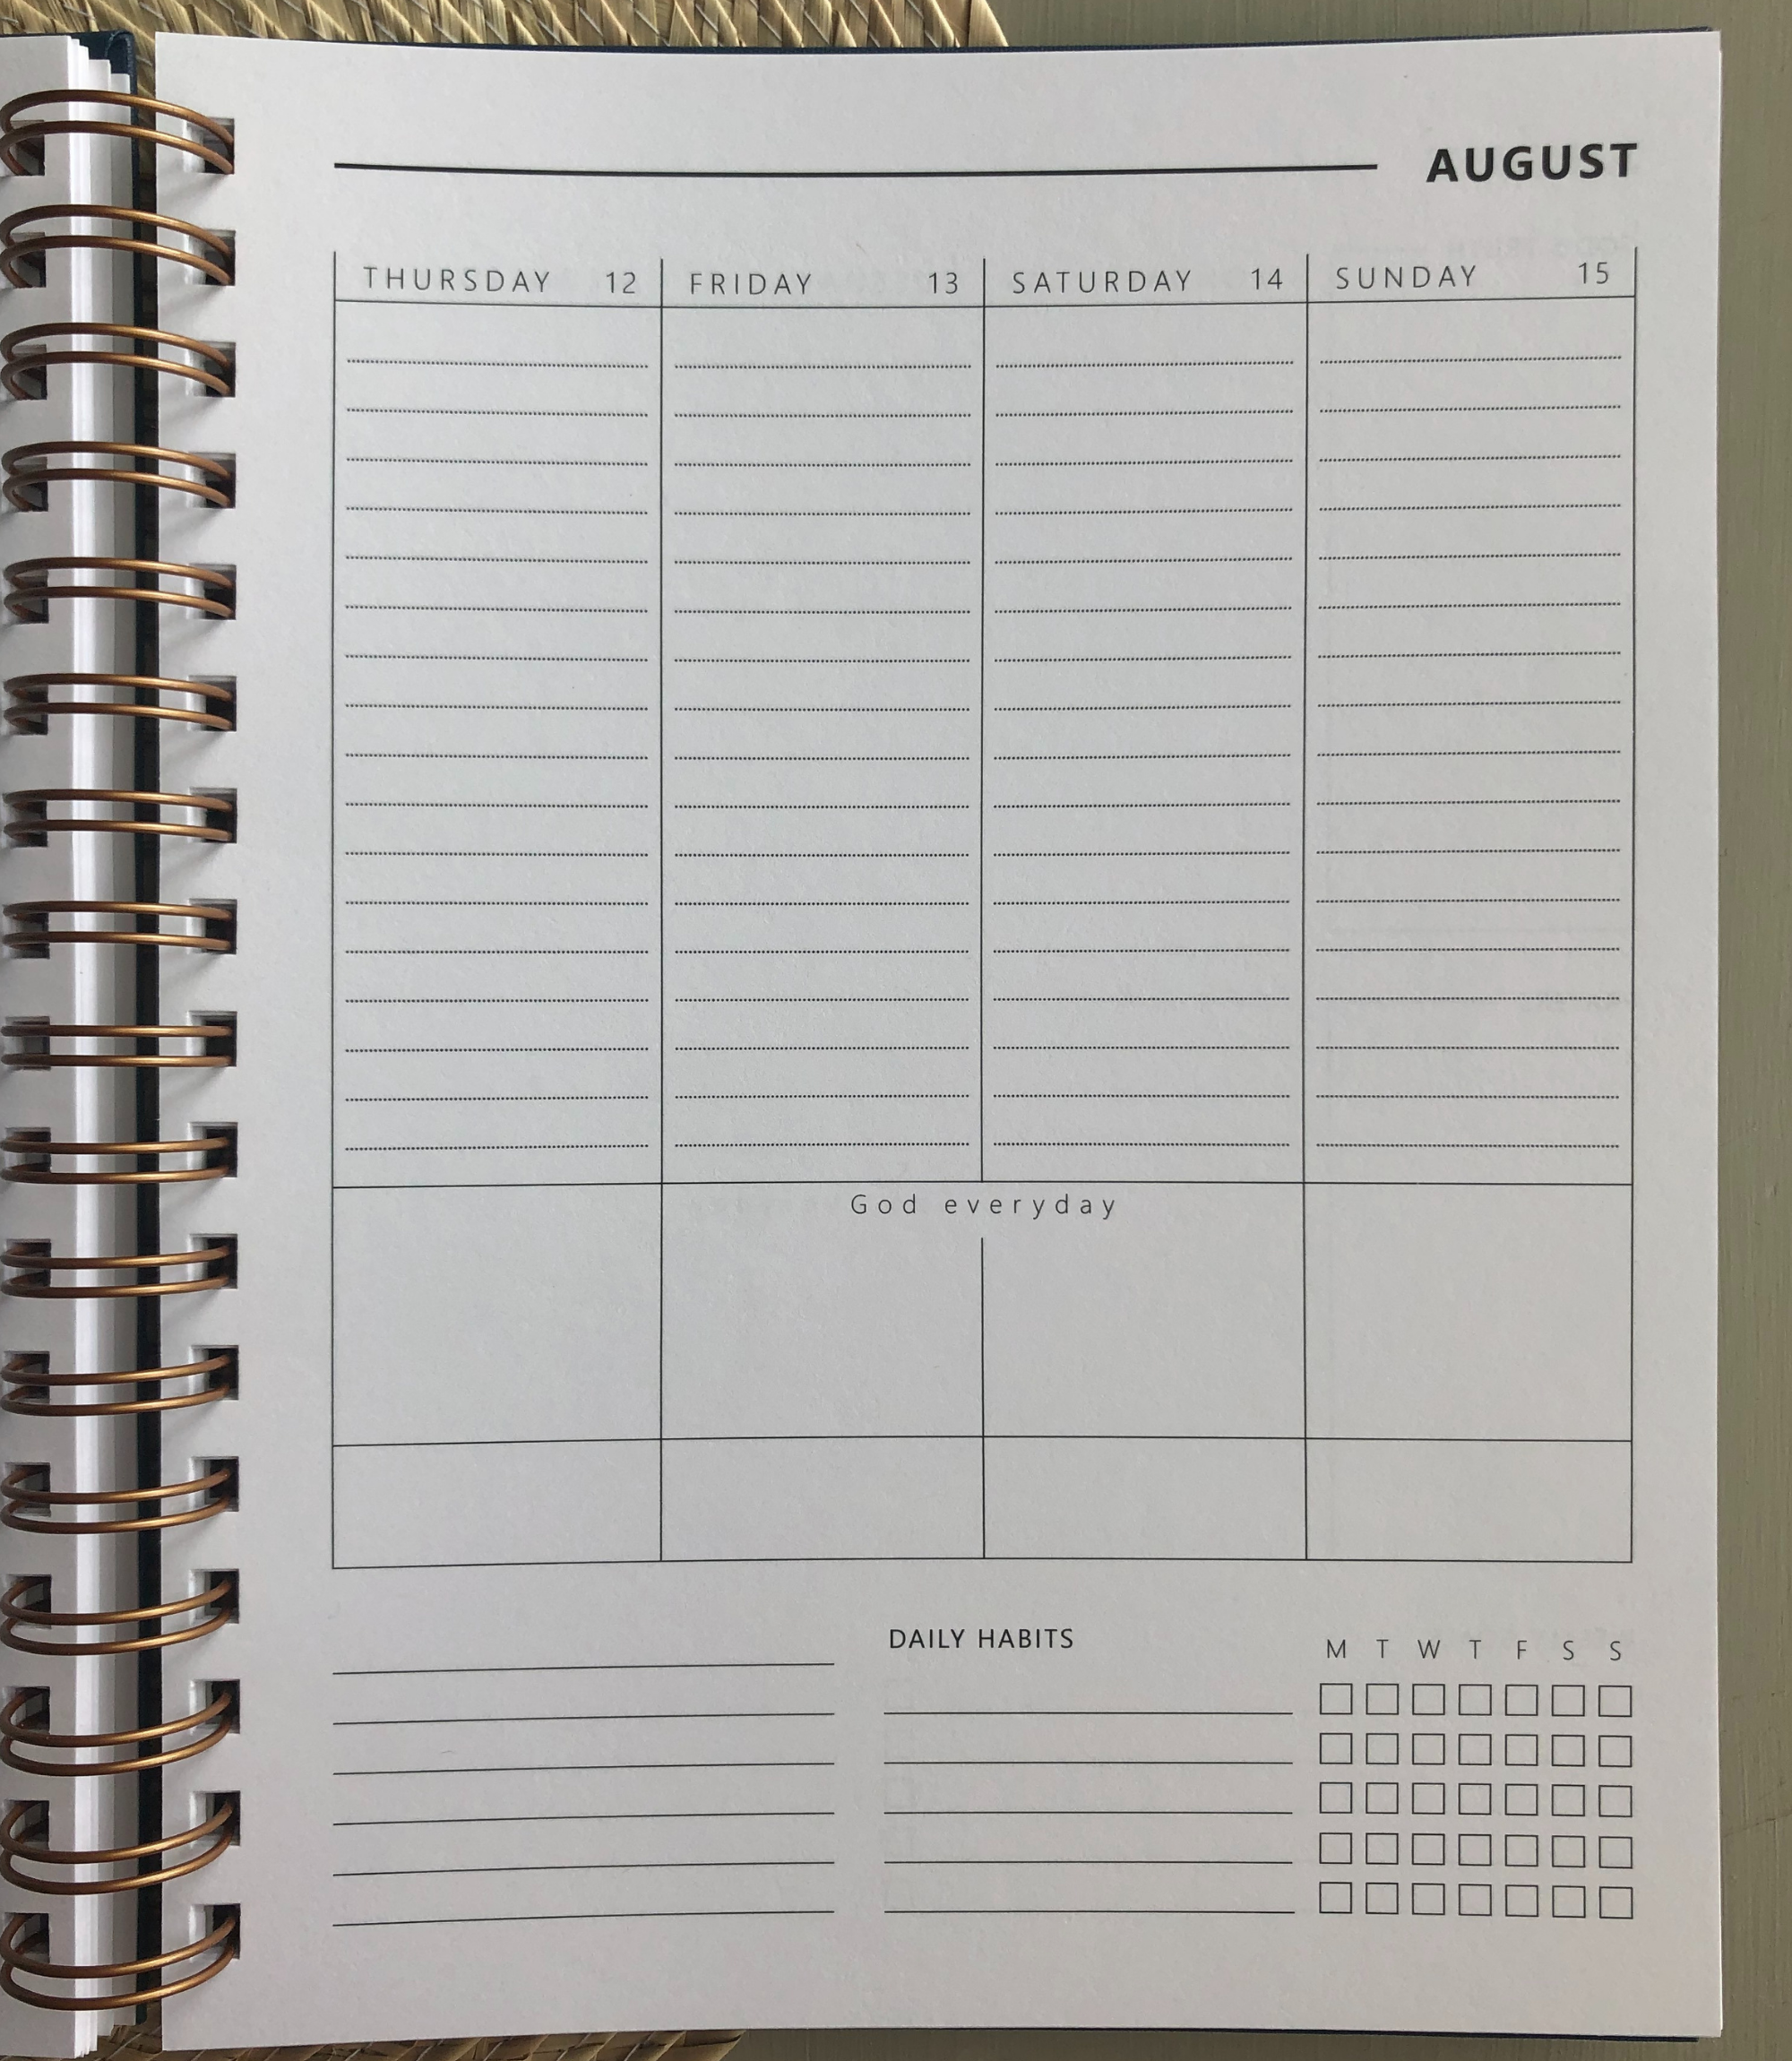 Christain planner weekly planner page